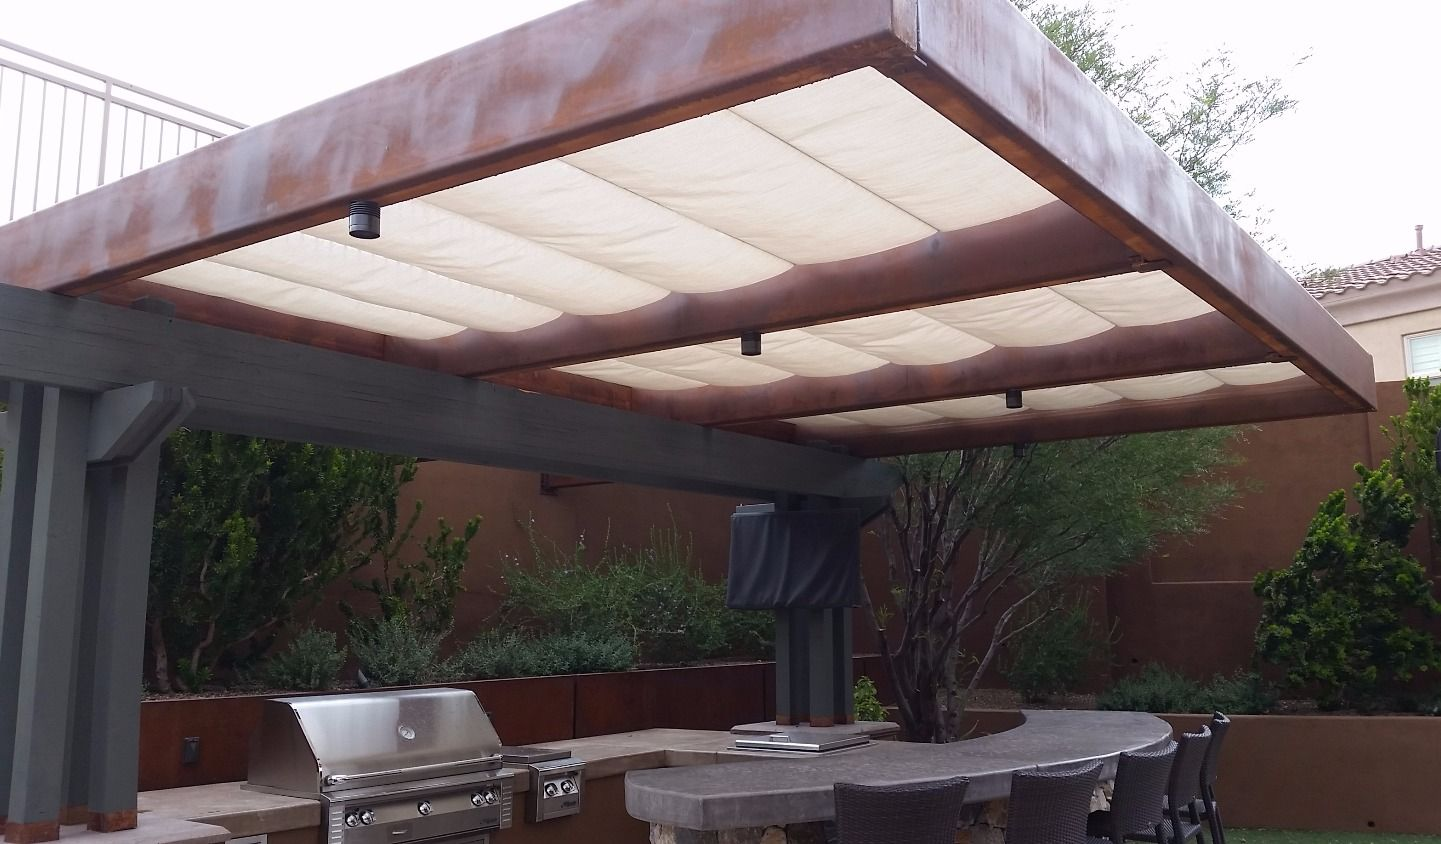 Cantilever Pergola with Infinity Canopy & Cantilever Pergola with Infinity Canopy | Pergolas Canopy and Decking